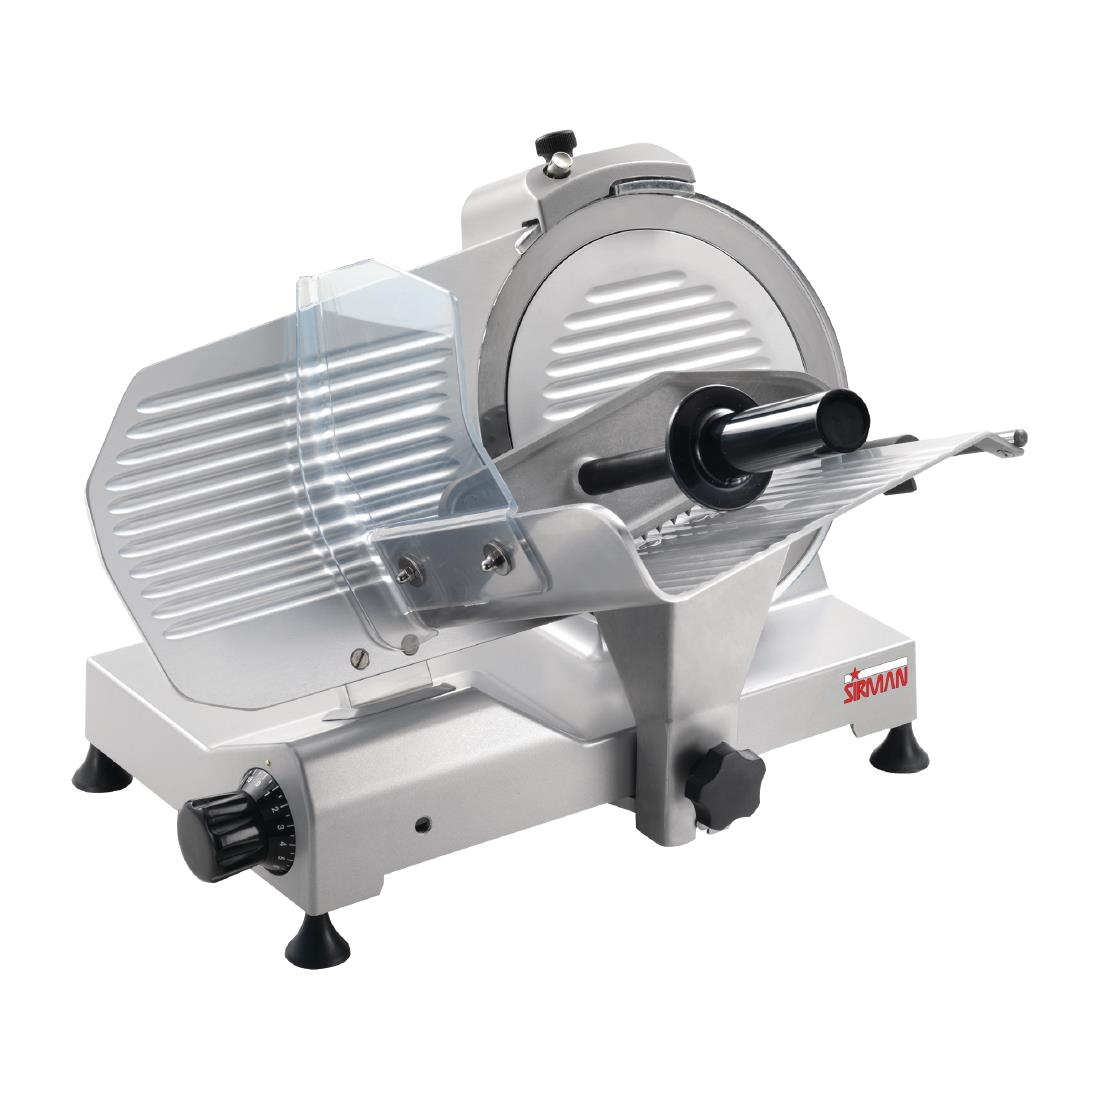 Sirman Meat Slicer Smart 250 - HC049 - Buy Online at Nisbets